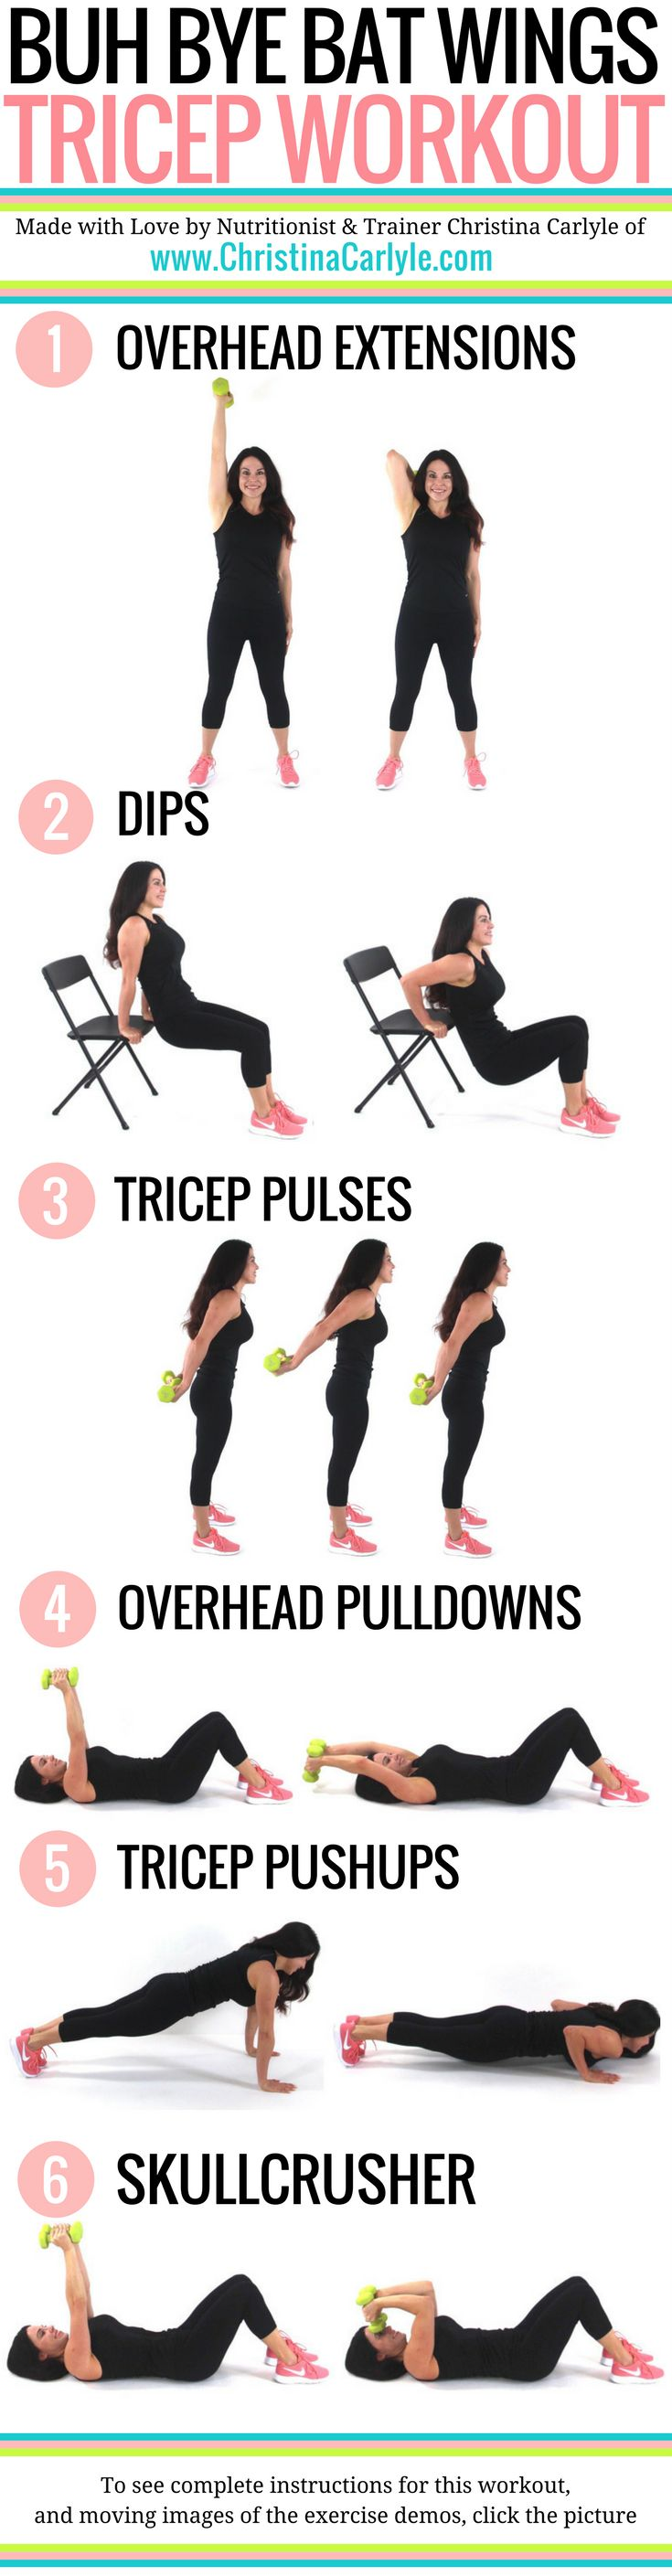 6 moves that will tighten your triceps fast Do your triceps make you feel self-conscious? Would you like to see definition in your triceps? Do you...